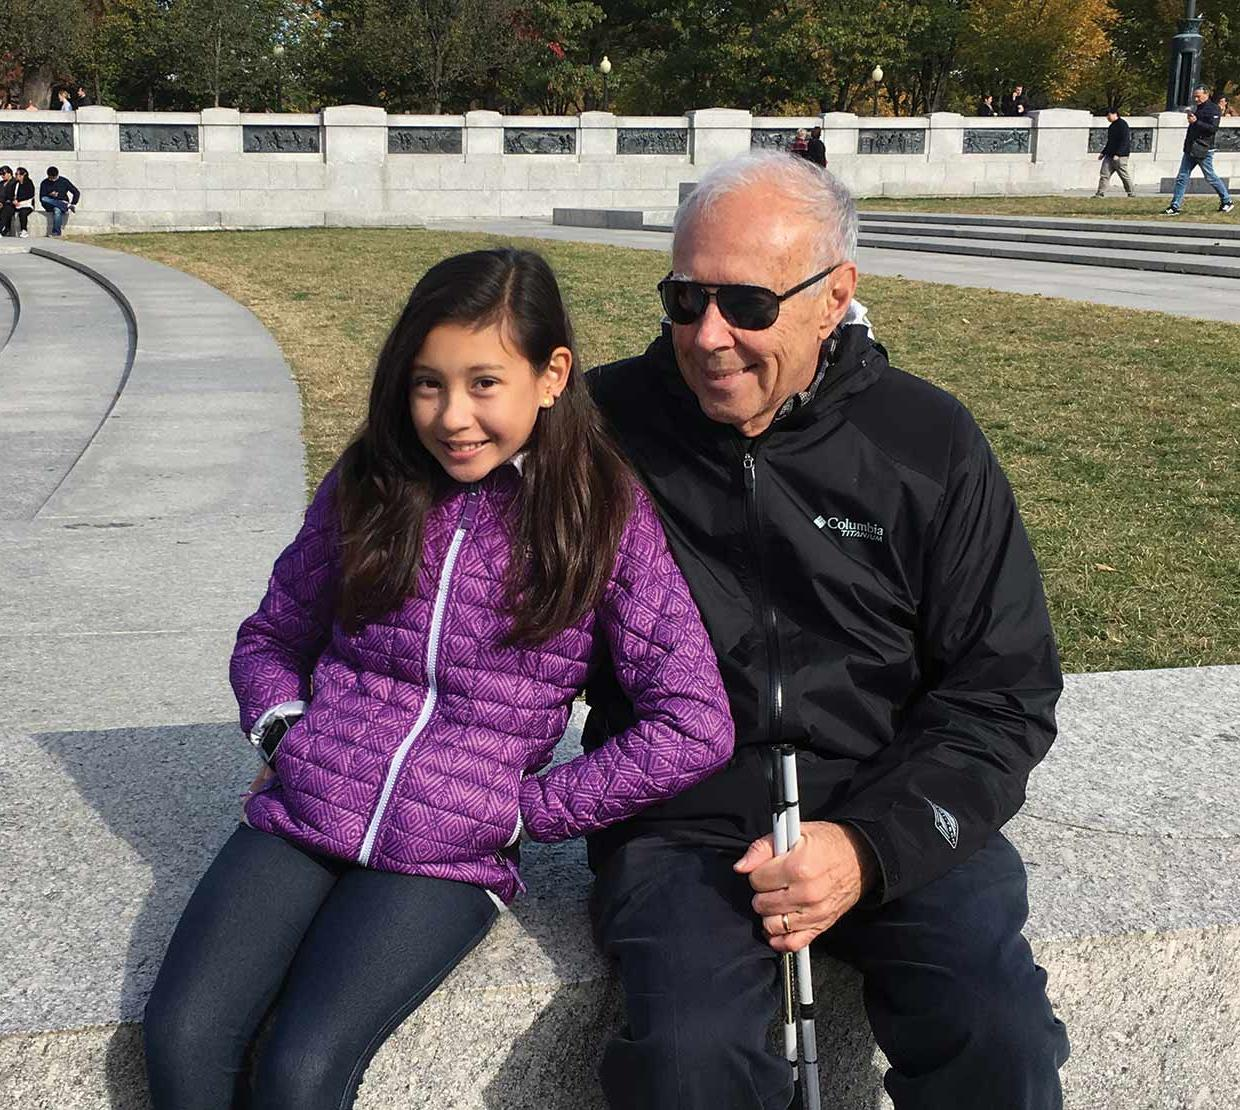 John Gardner with grand daughter sitting in a park